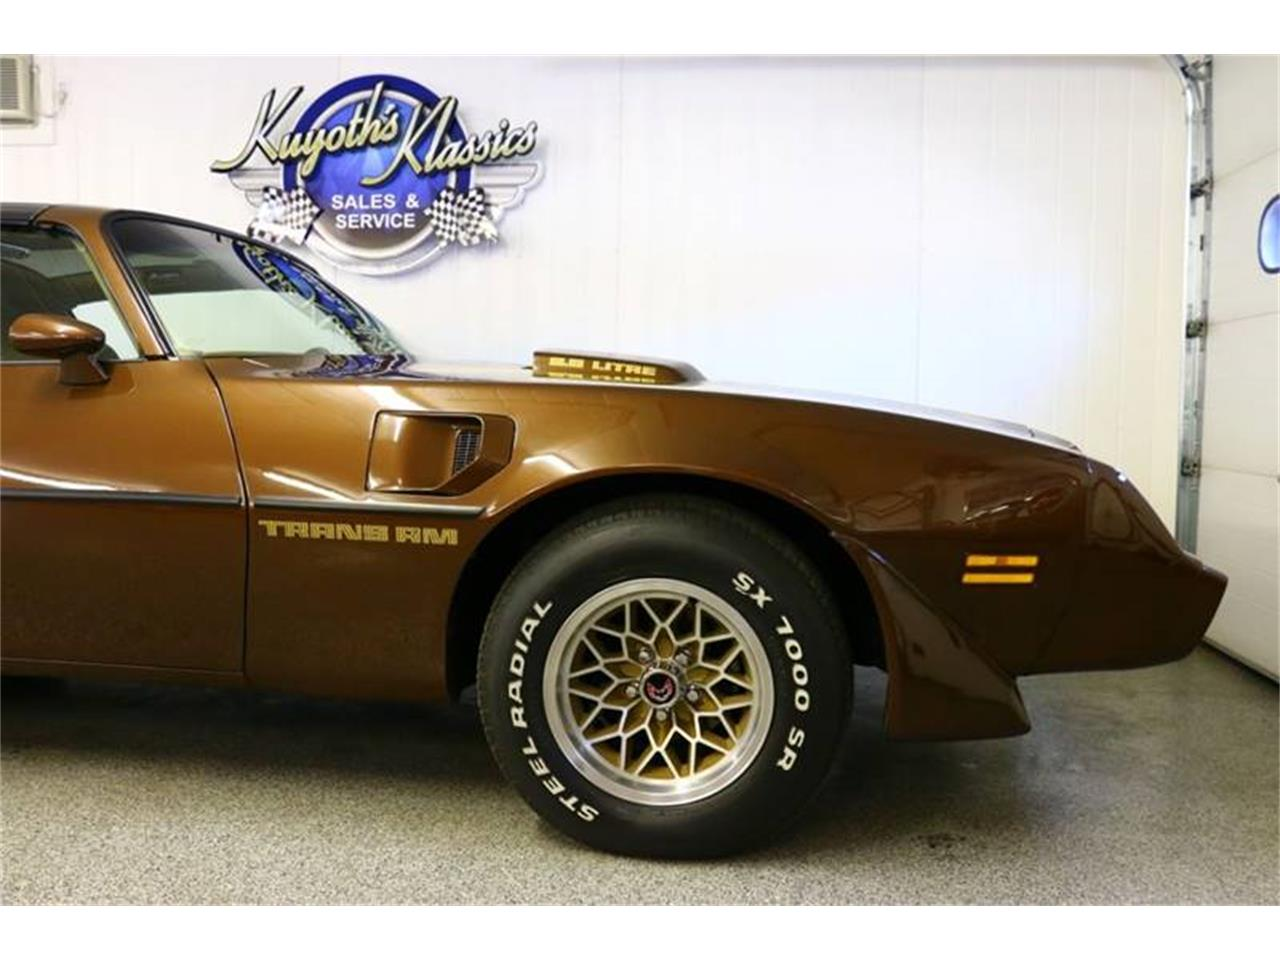 1979 Pontiac Firebird Trans Am for sale in Stratford, WI – photo 42